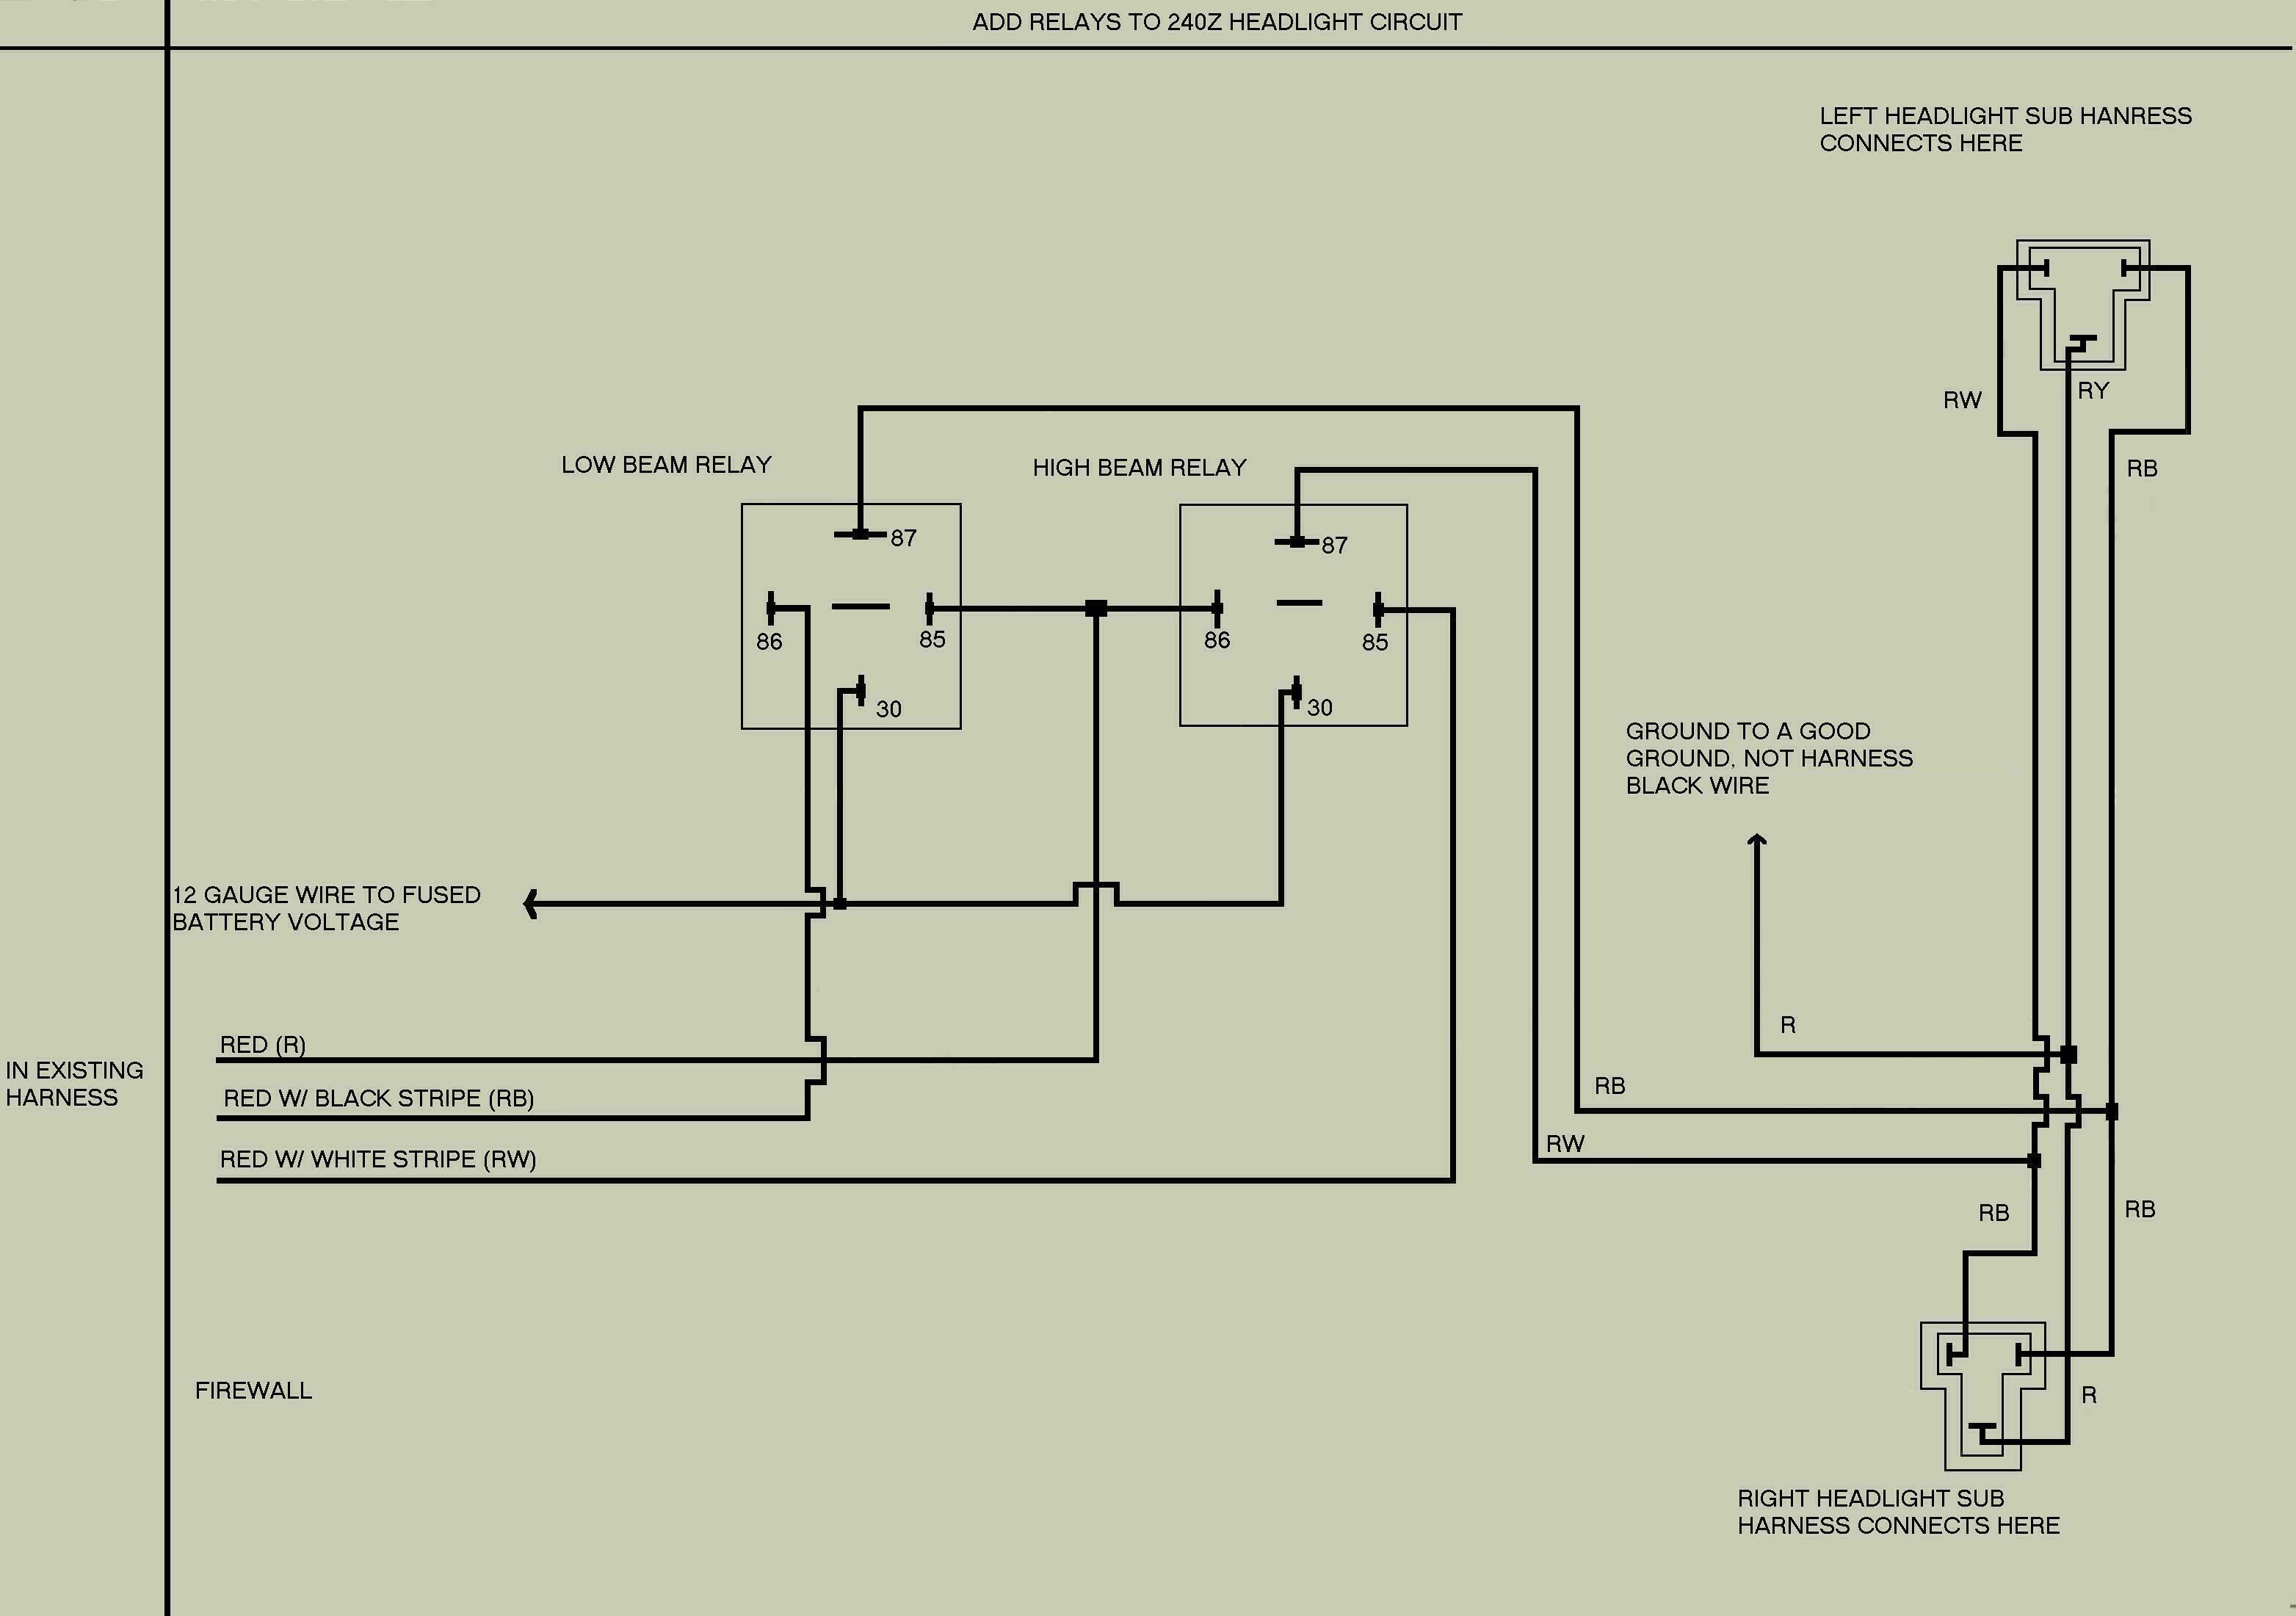 Headlight_Relay_Diagram 240z headlight relay mod headlight relay wiring harness at bayanpartner.co